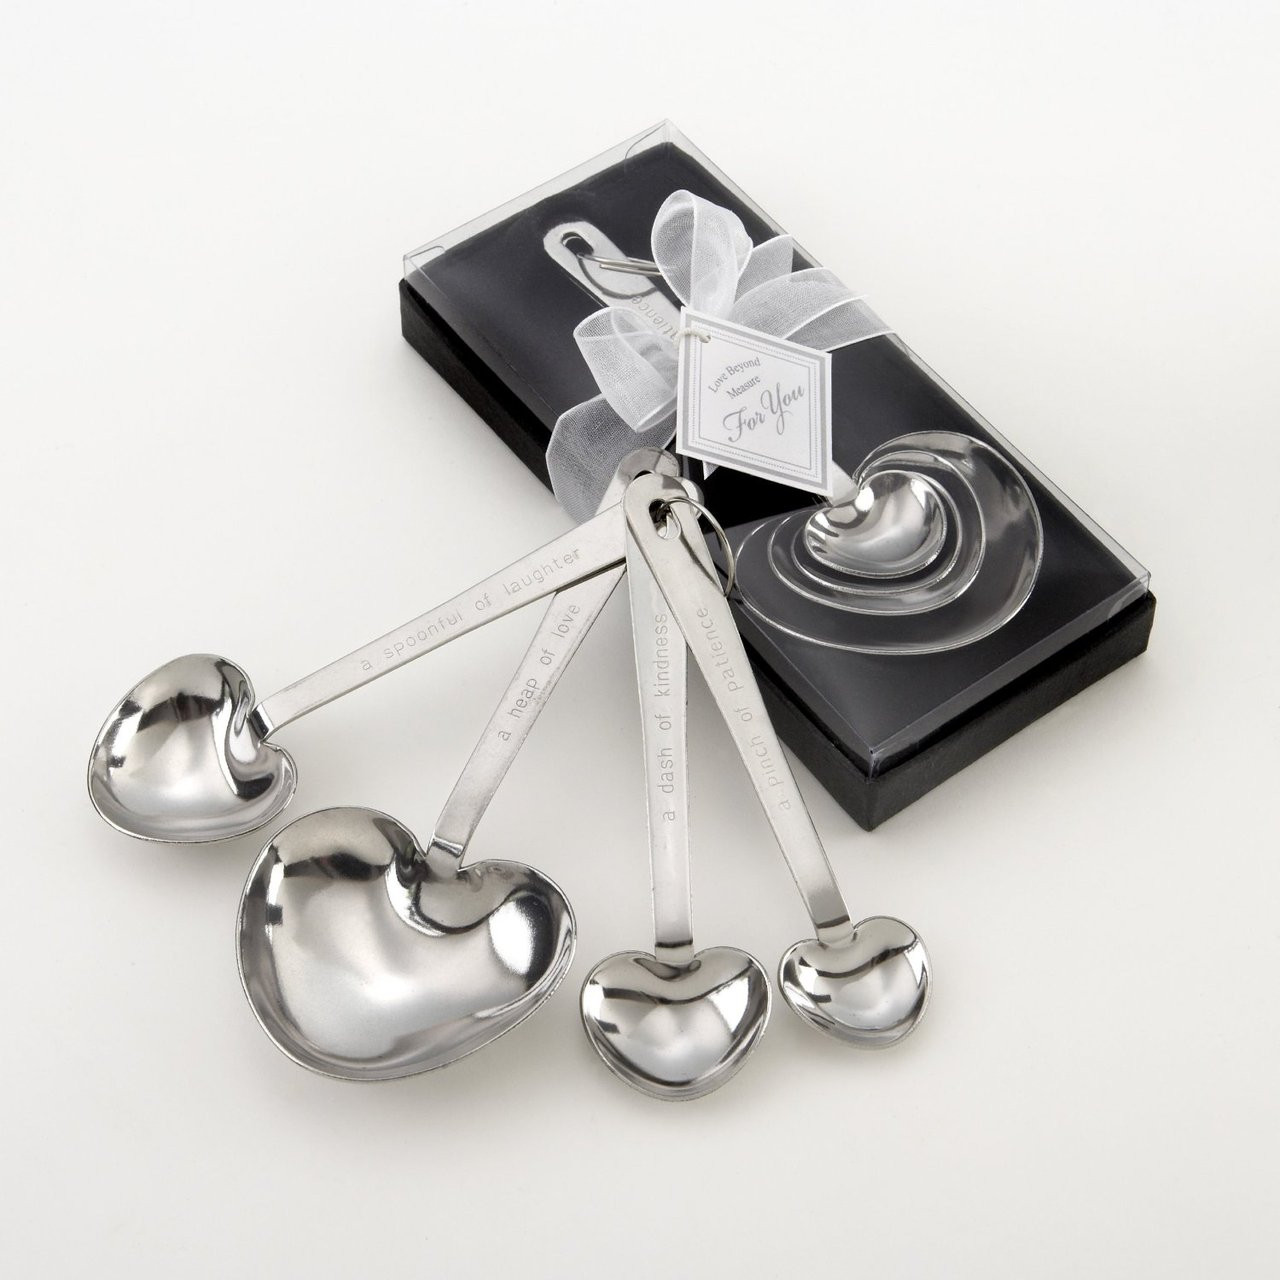 Heart Shaped Measuring Spoons in Gift Box - AngelSale